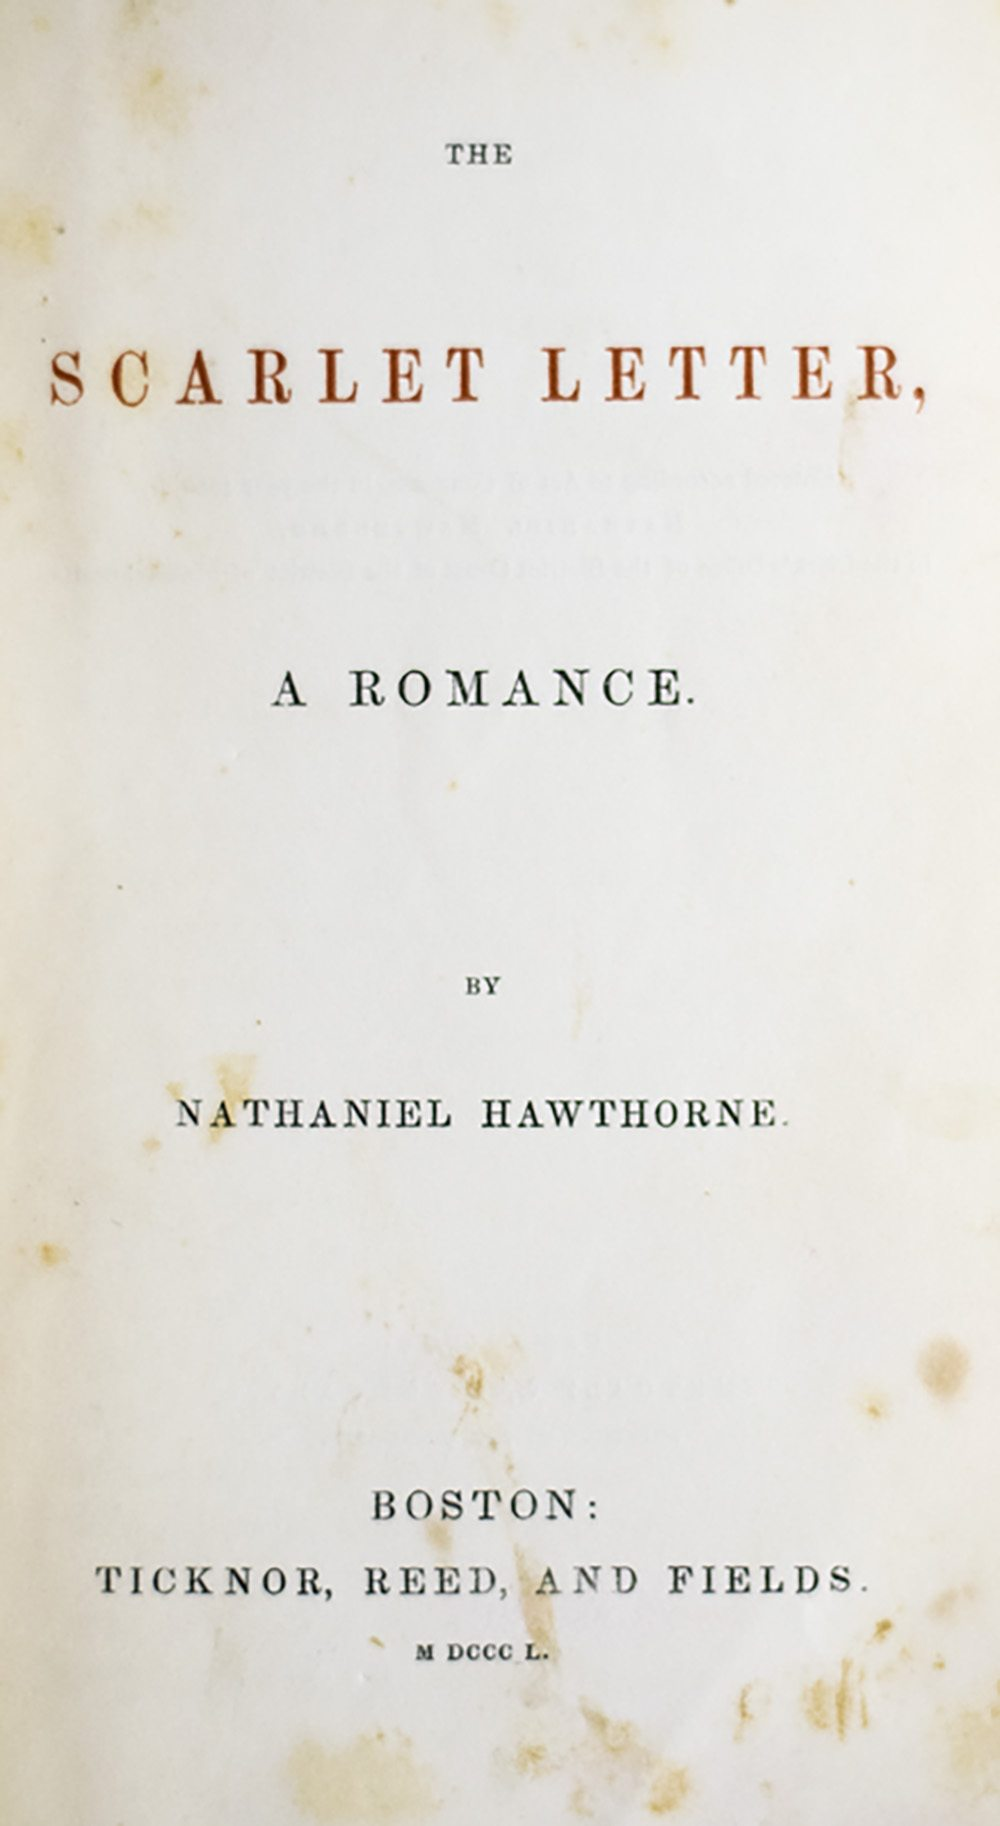 innocence on the example of the scarlett letter by nathaniel hawthorne In american literature, nathaniel hawthorne's novel the scarlet letter   interpretations, as well as the samples of symbolism selected from the novel   pearl is a symbol of childhood's innocence, because she is the only major  character in.